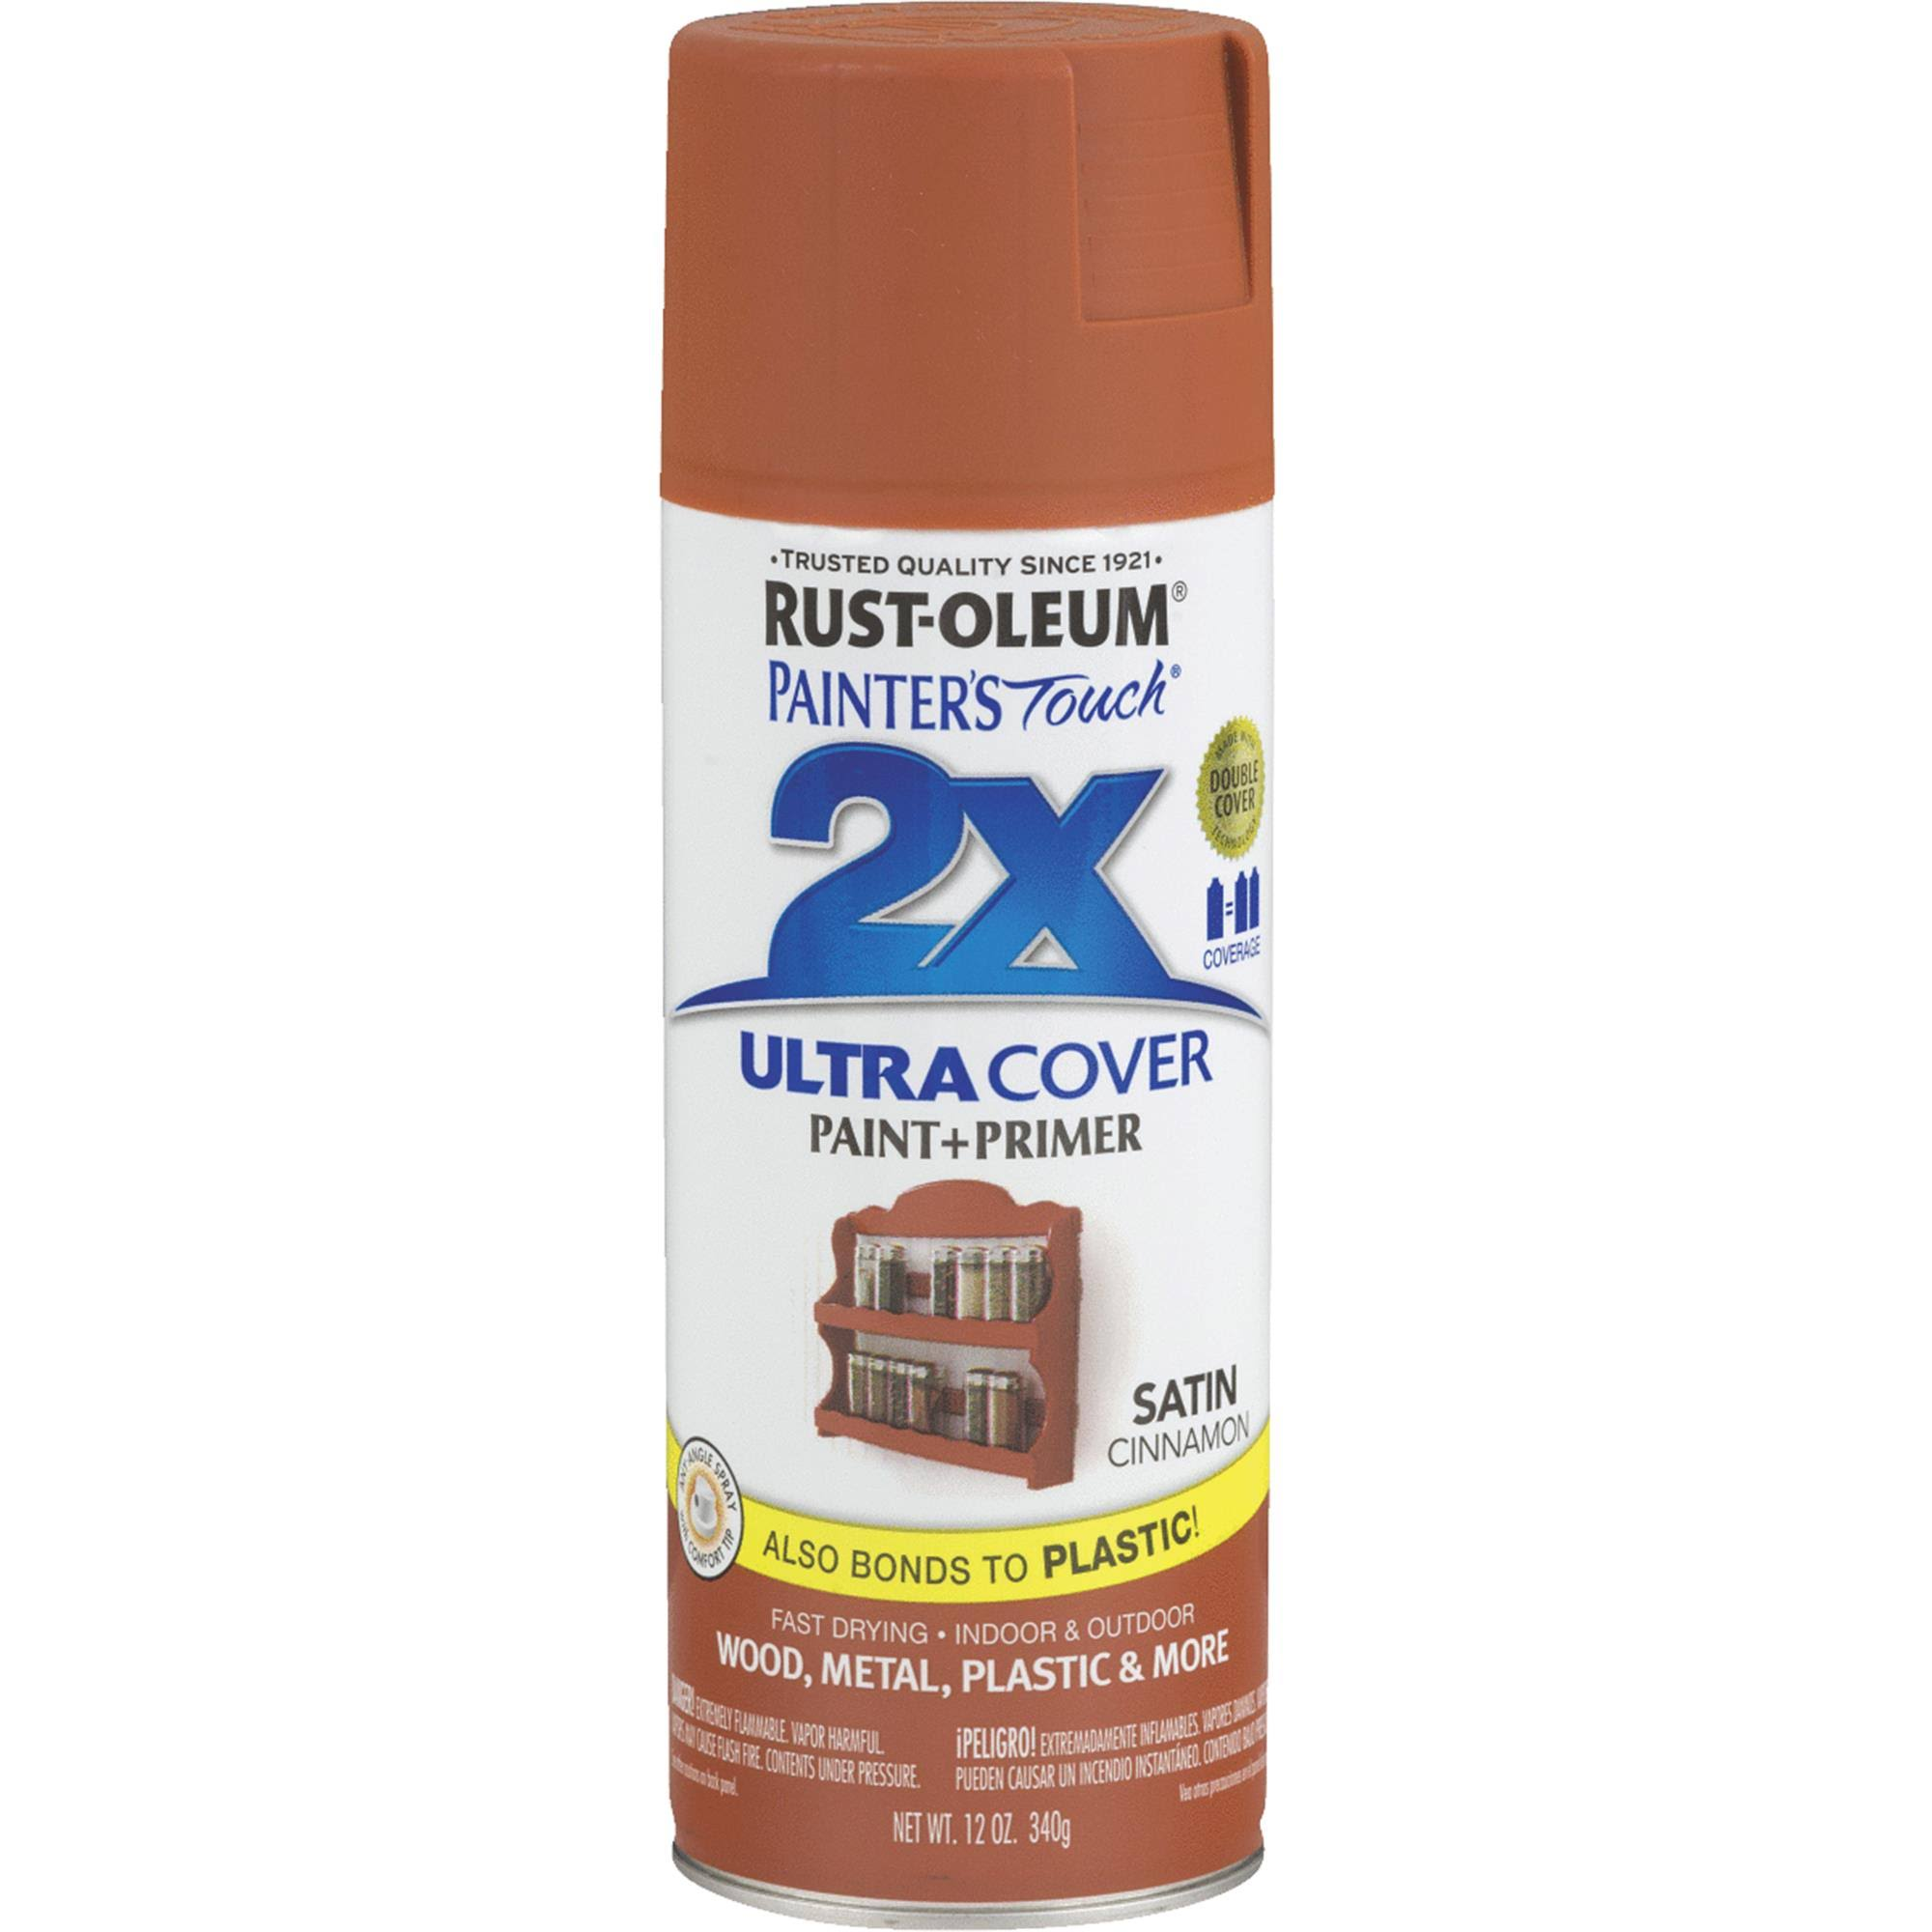 Rust Oleum Painter's Touch Multi Purpose Spray Paint - 12oz, Satin Cinnamon